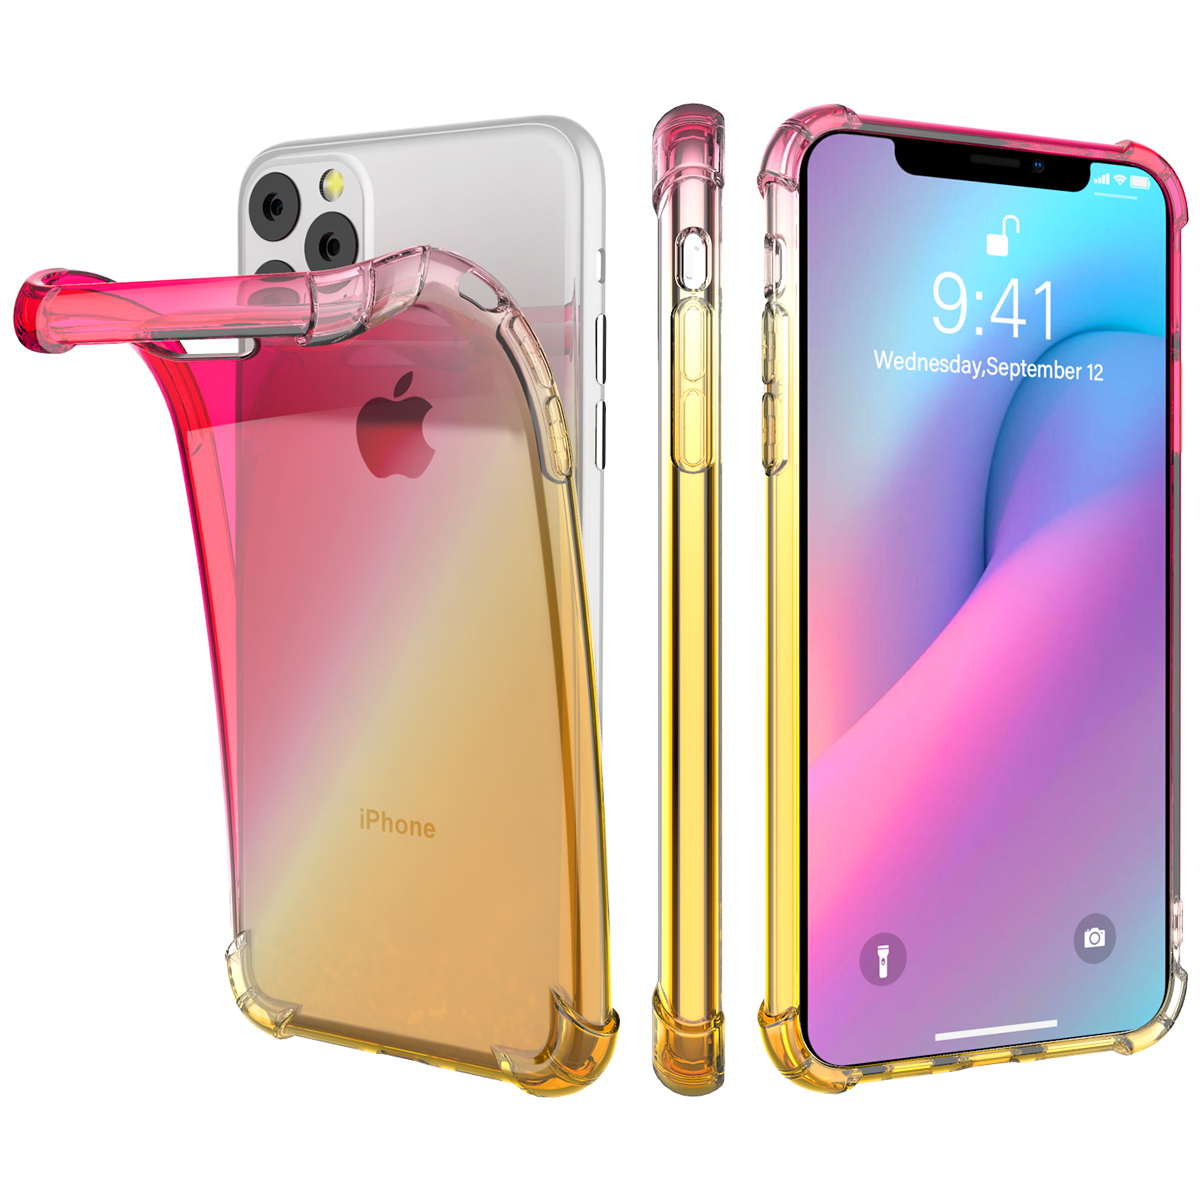 Gradient Soft TPU Case for iPhone 11/11 Pro/11 Pro Max 34